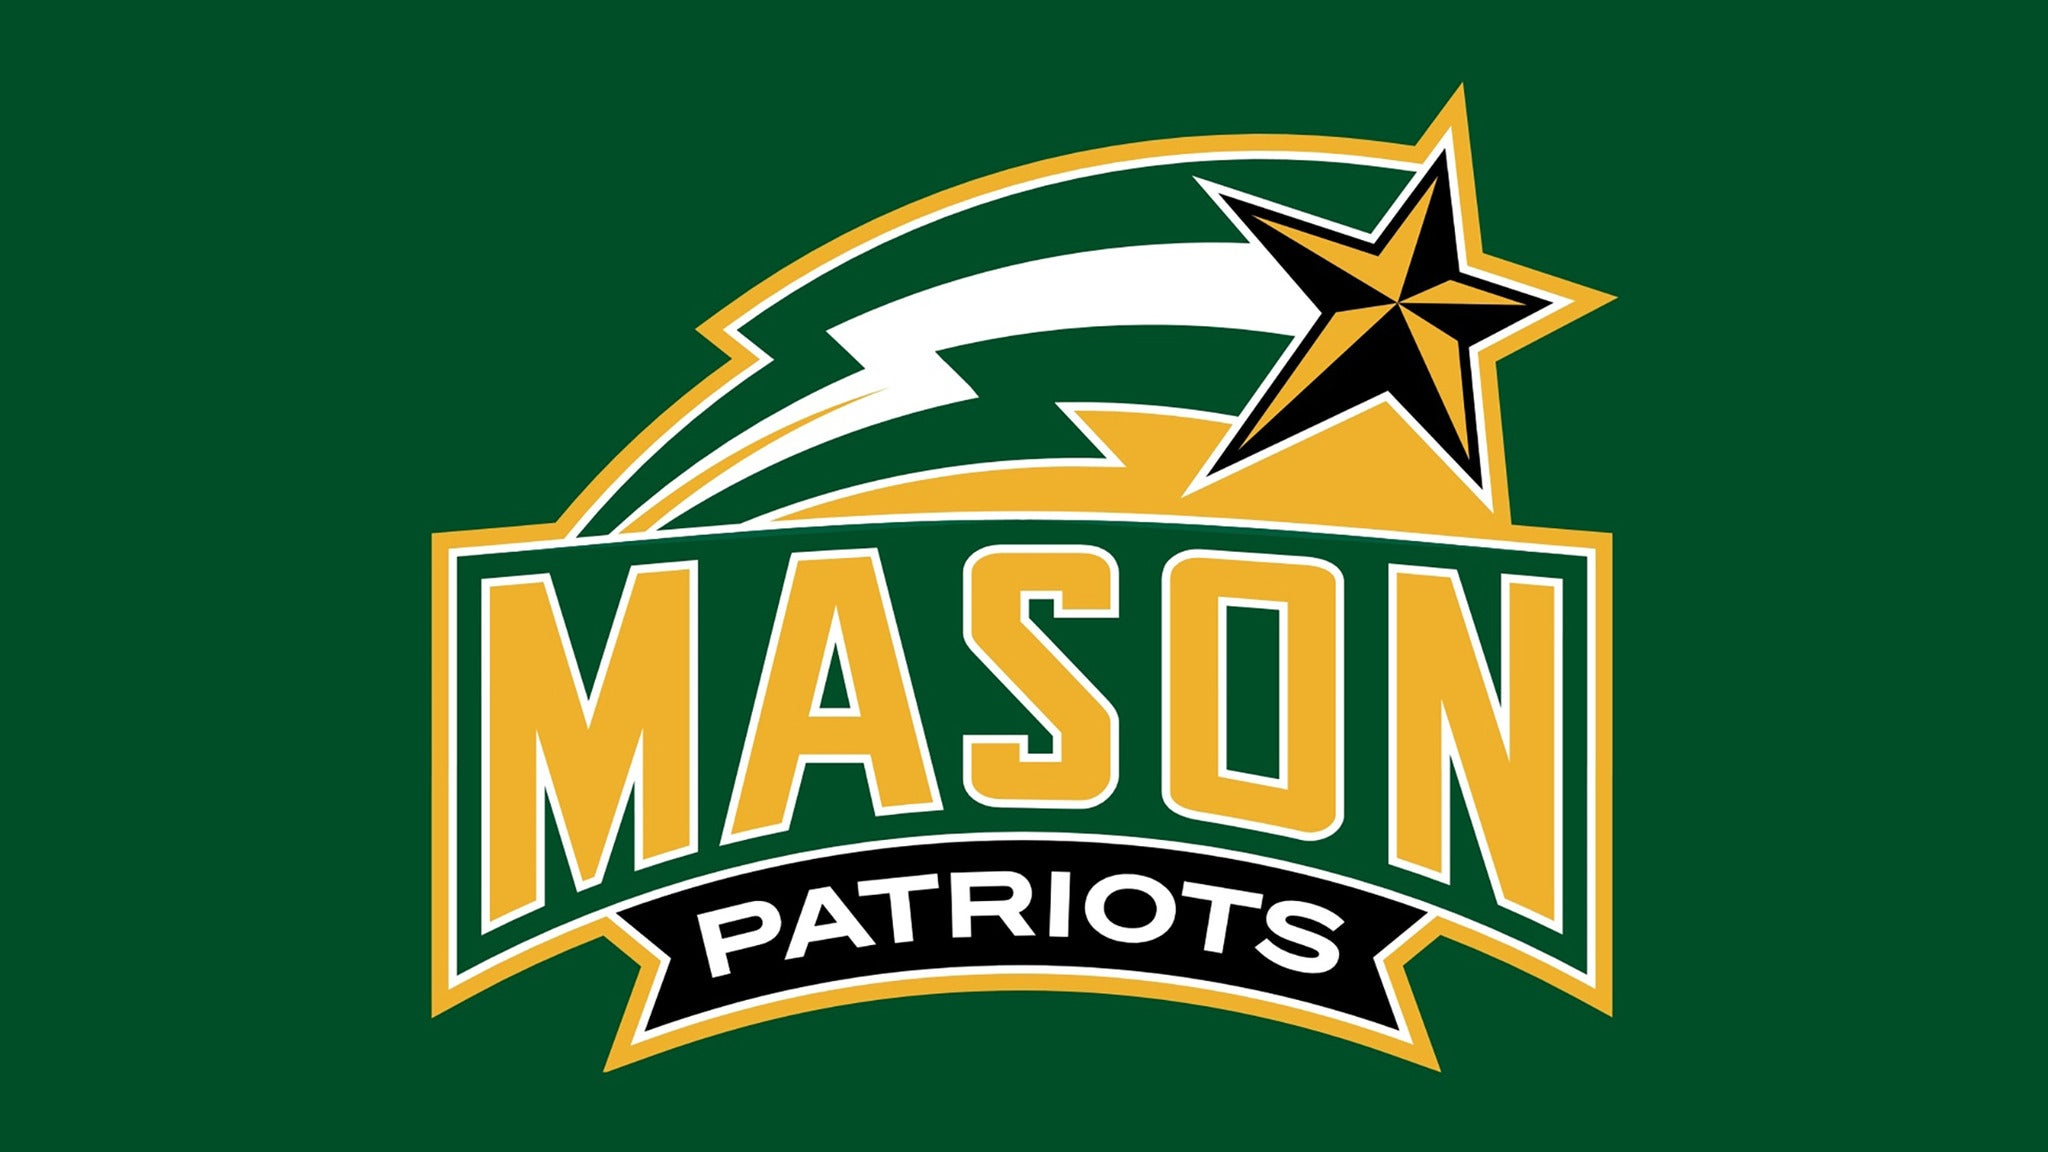 George Mason University Patriots Mens Basketball vs. James Madison Dukes Mens Basketball